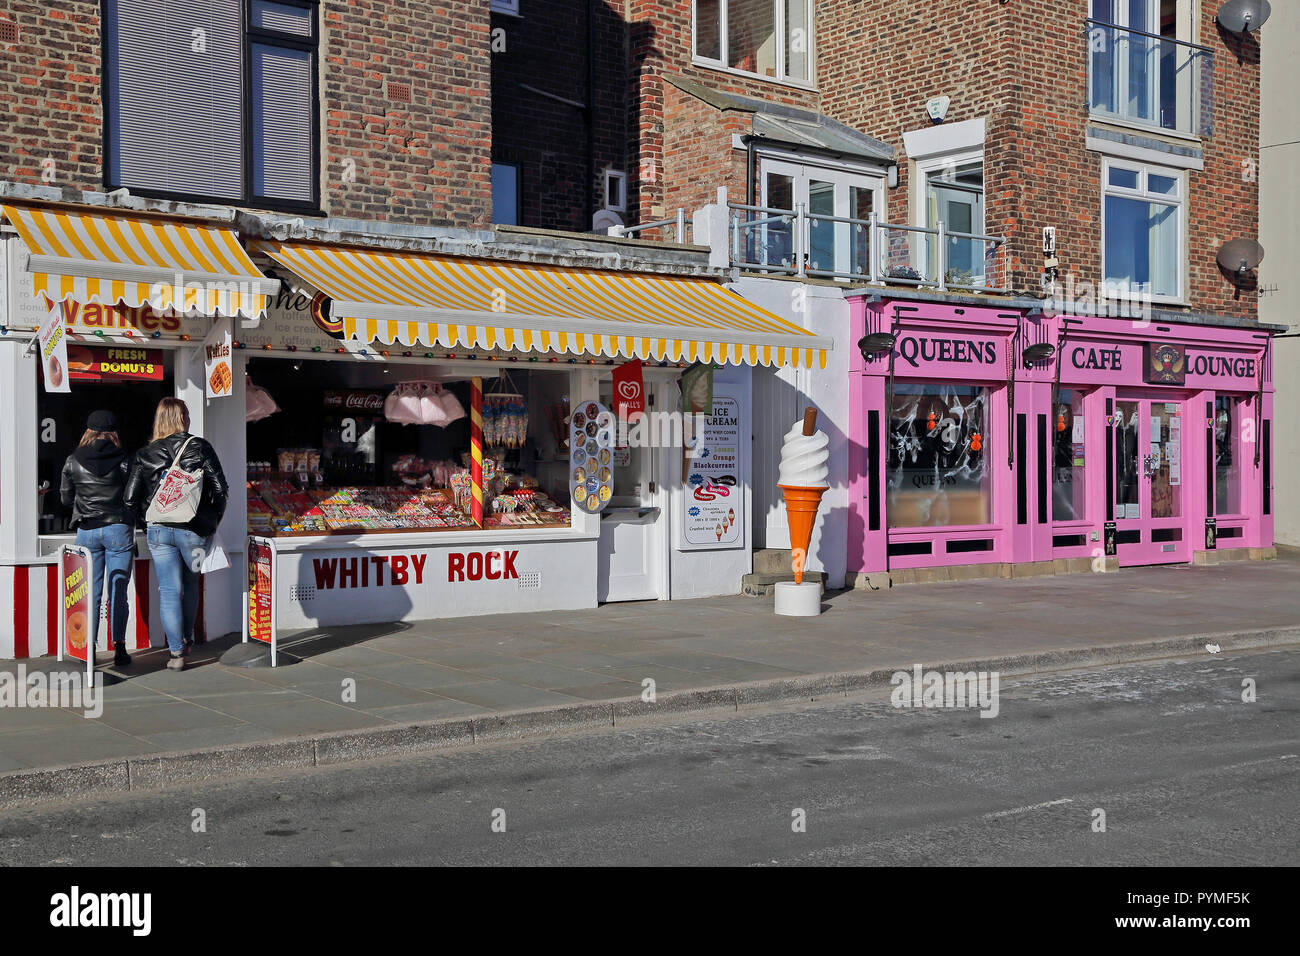 A view of tourist shops alongside the harbour in Whitby, North Yorkshire, UK. - Stock Image